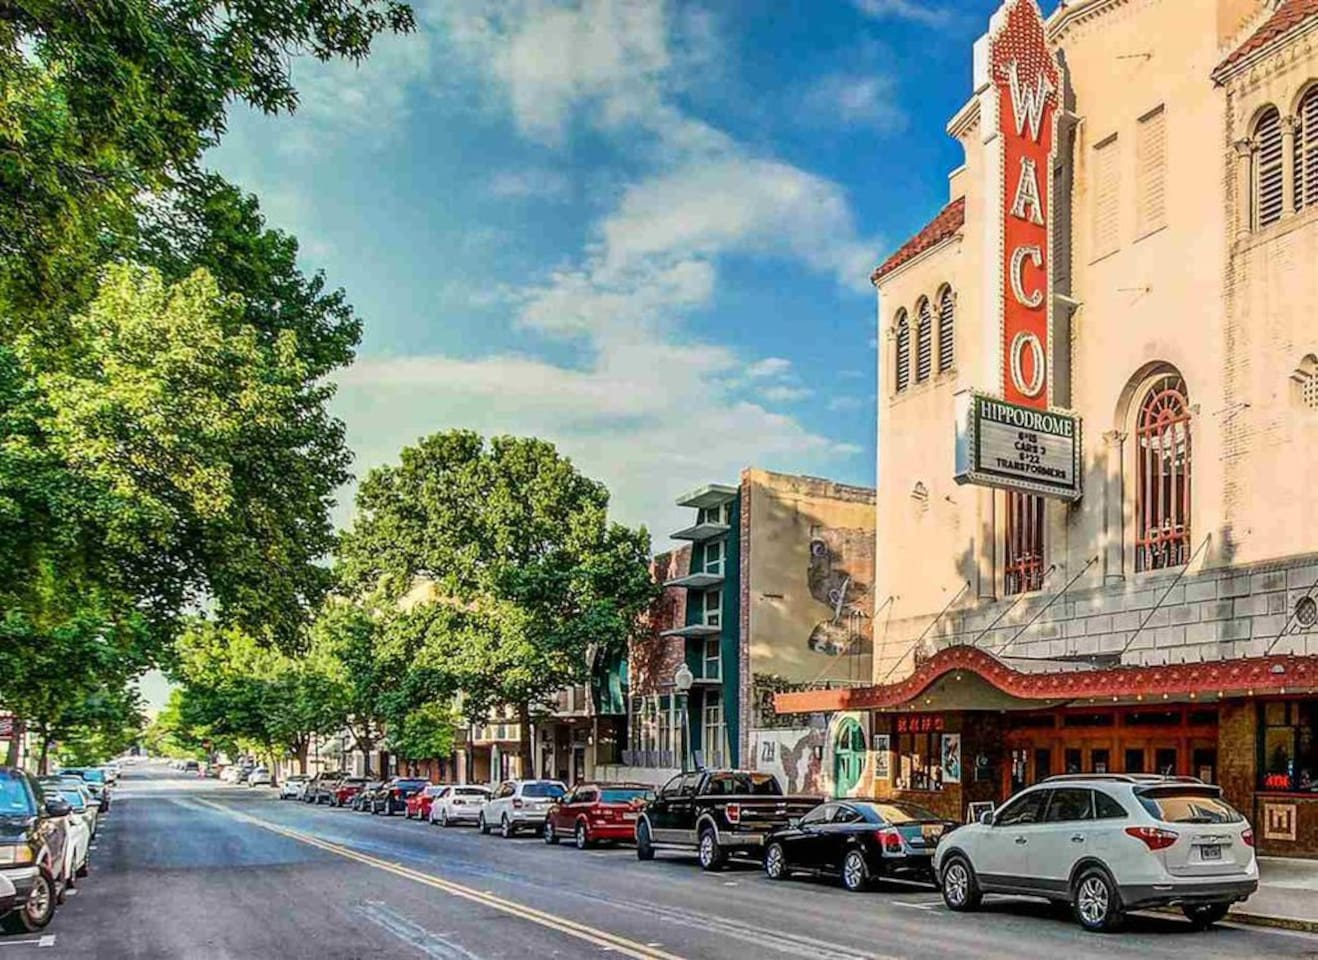 Condo is on the right directly across from the Waco Hippodrome!